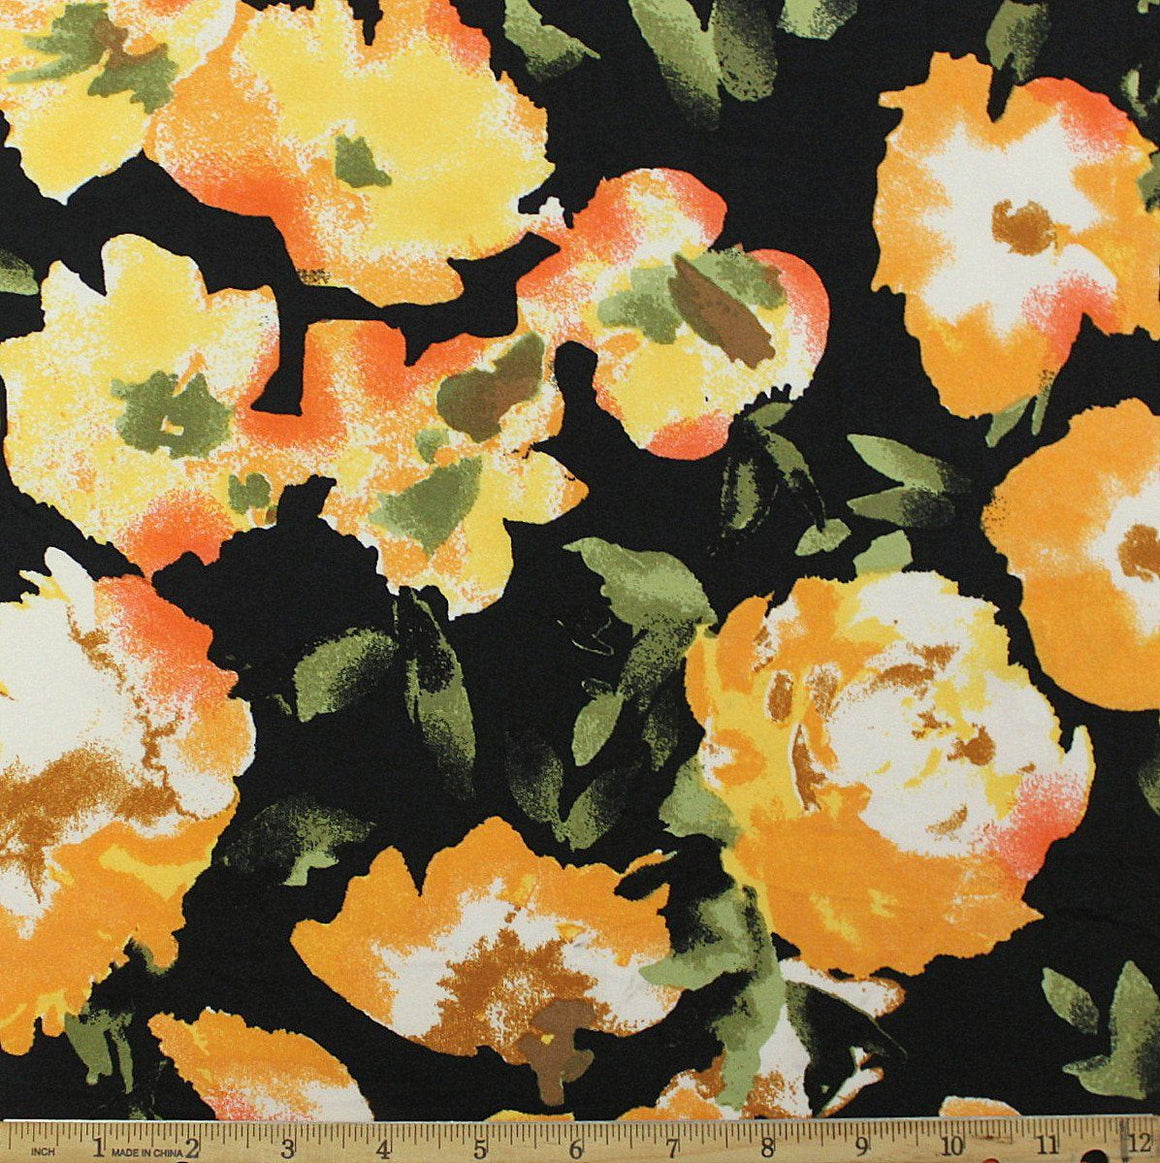 Black Mustard Orange and Olive Painted Floral Double Brushed Poly Spandex Knit, 1 yard - Raspberry Creek Fabrics